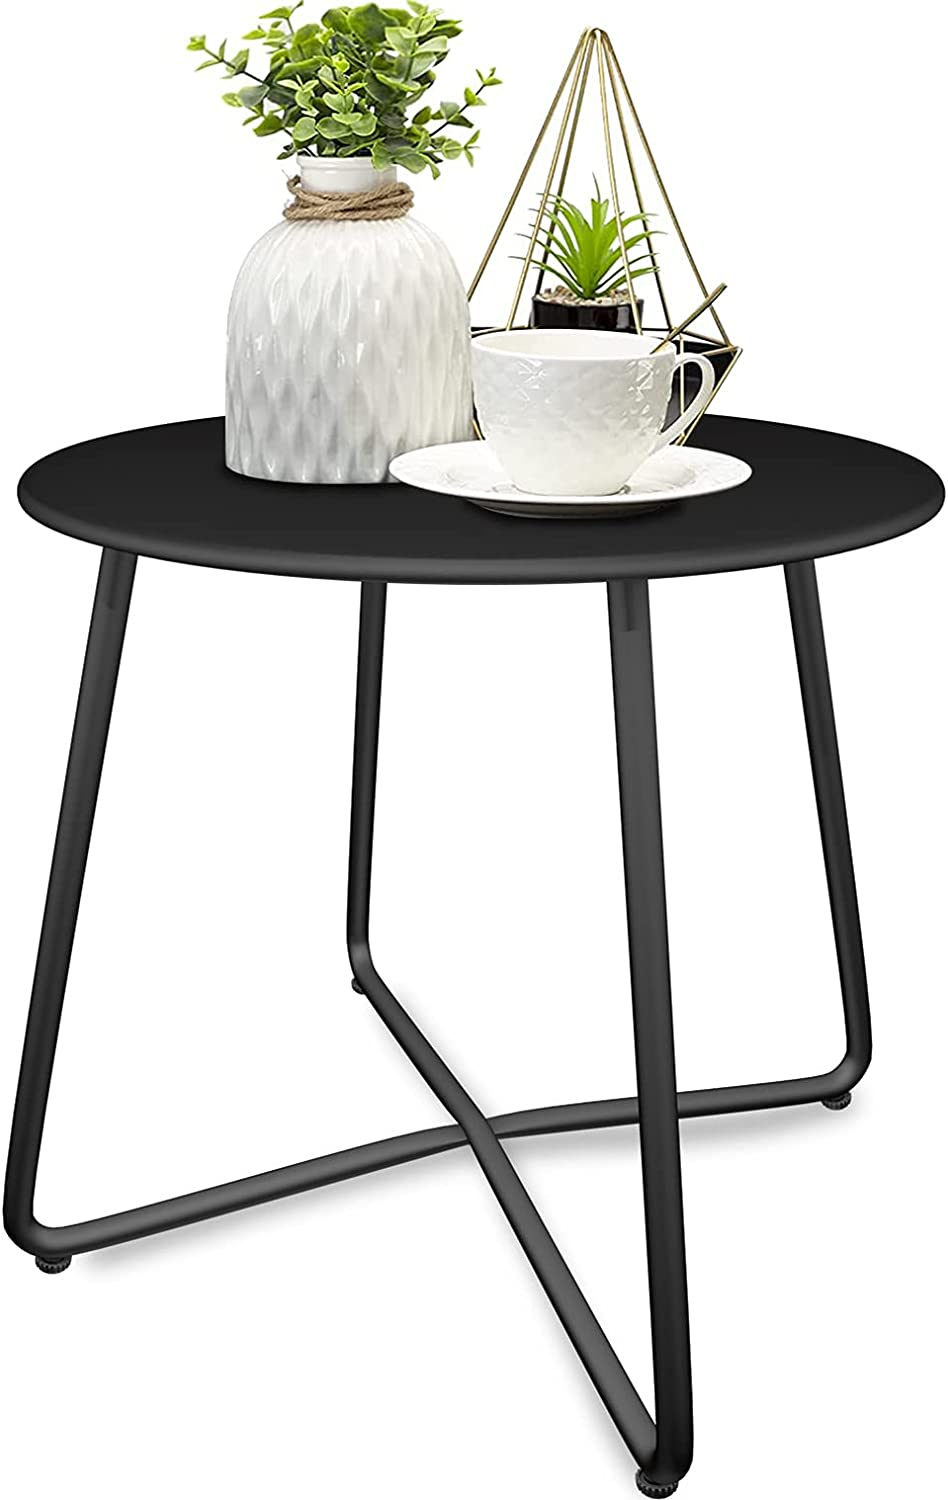 YLHDRILY Steel Patio Side Table, Metal Outdoor Small Round End Table Heavy Duty Weather Resistant Anti-Rust Small Steel Round Coffee Table Porch Table Snack Table for Balcony,Garden,Yard,Lawn,Black : Patio, Lawn & Garden